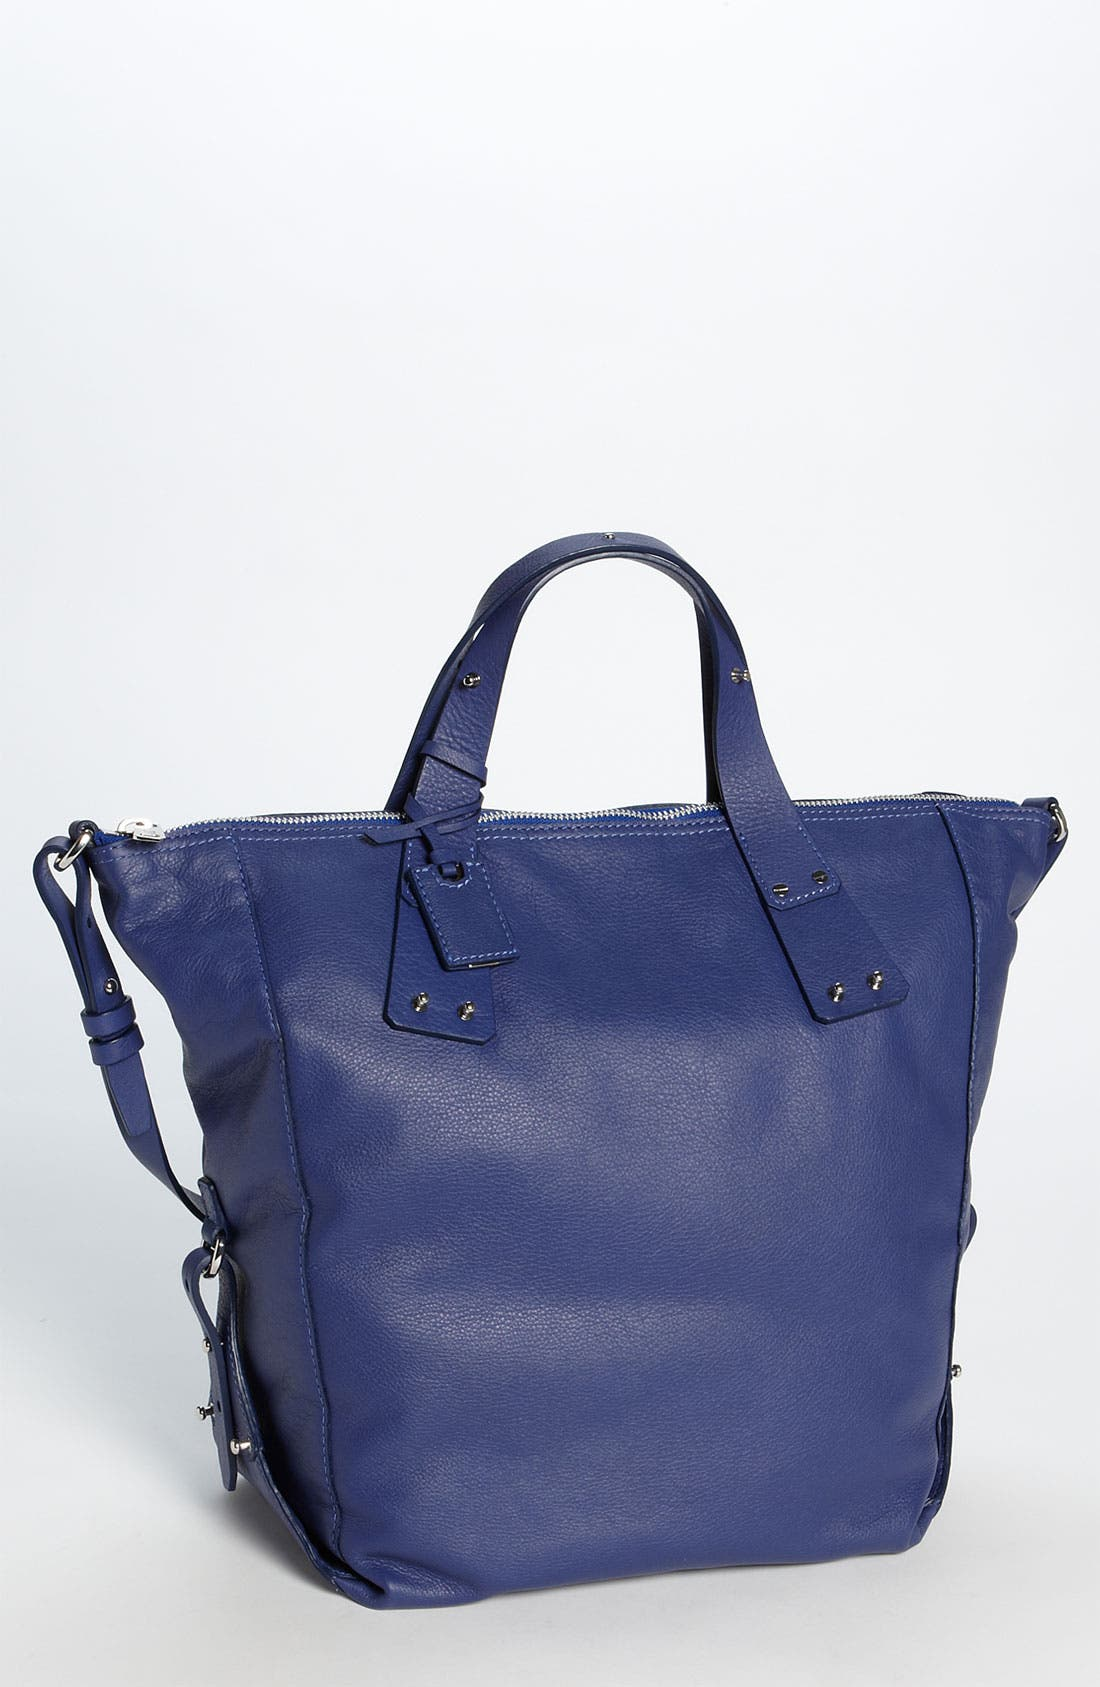 Main Image - McQ by Alexander McQueen 'Stepney' Tote